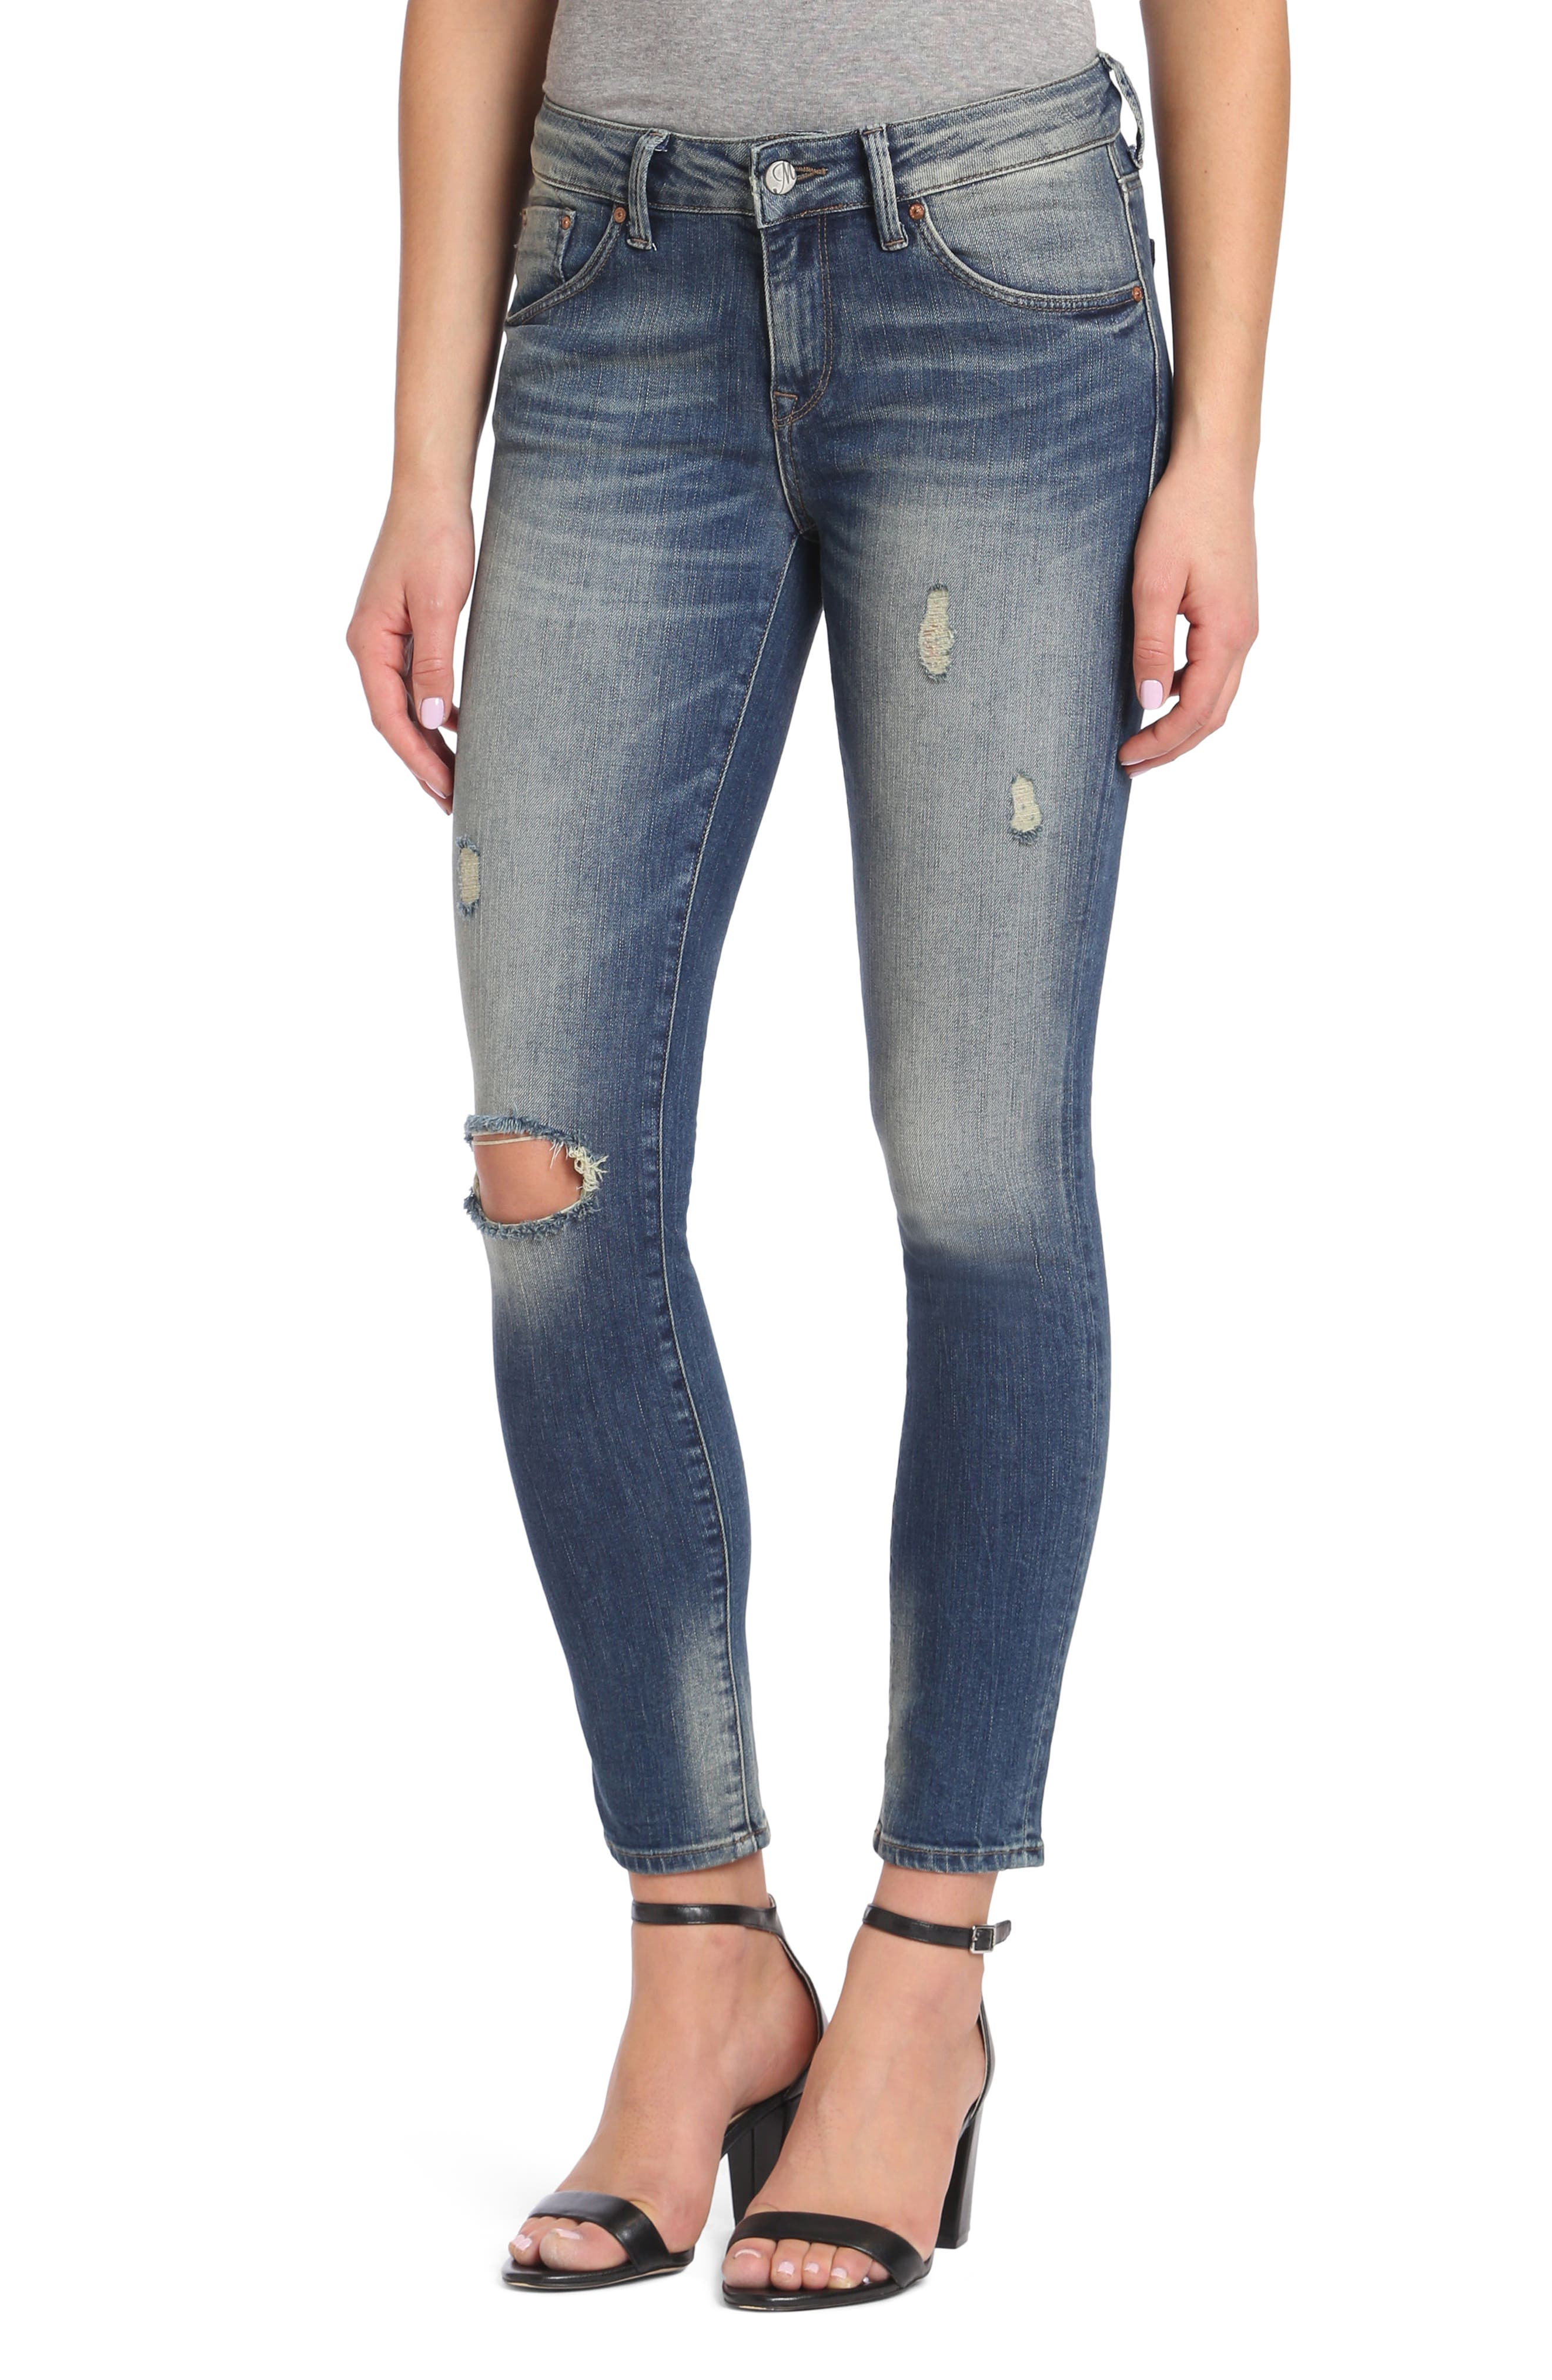 Alternate Image 1 Selected - Mavi Jeans Adriana Stretch Skinny Jeans (Mid Shaded Glam Vintage)